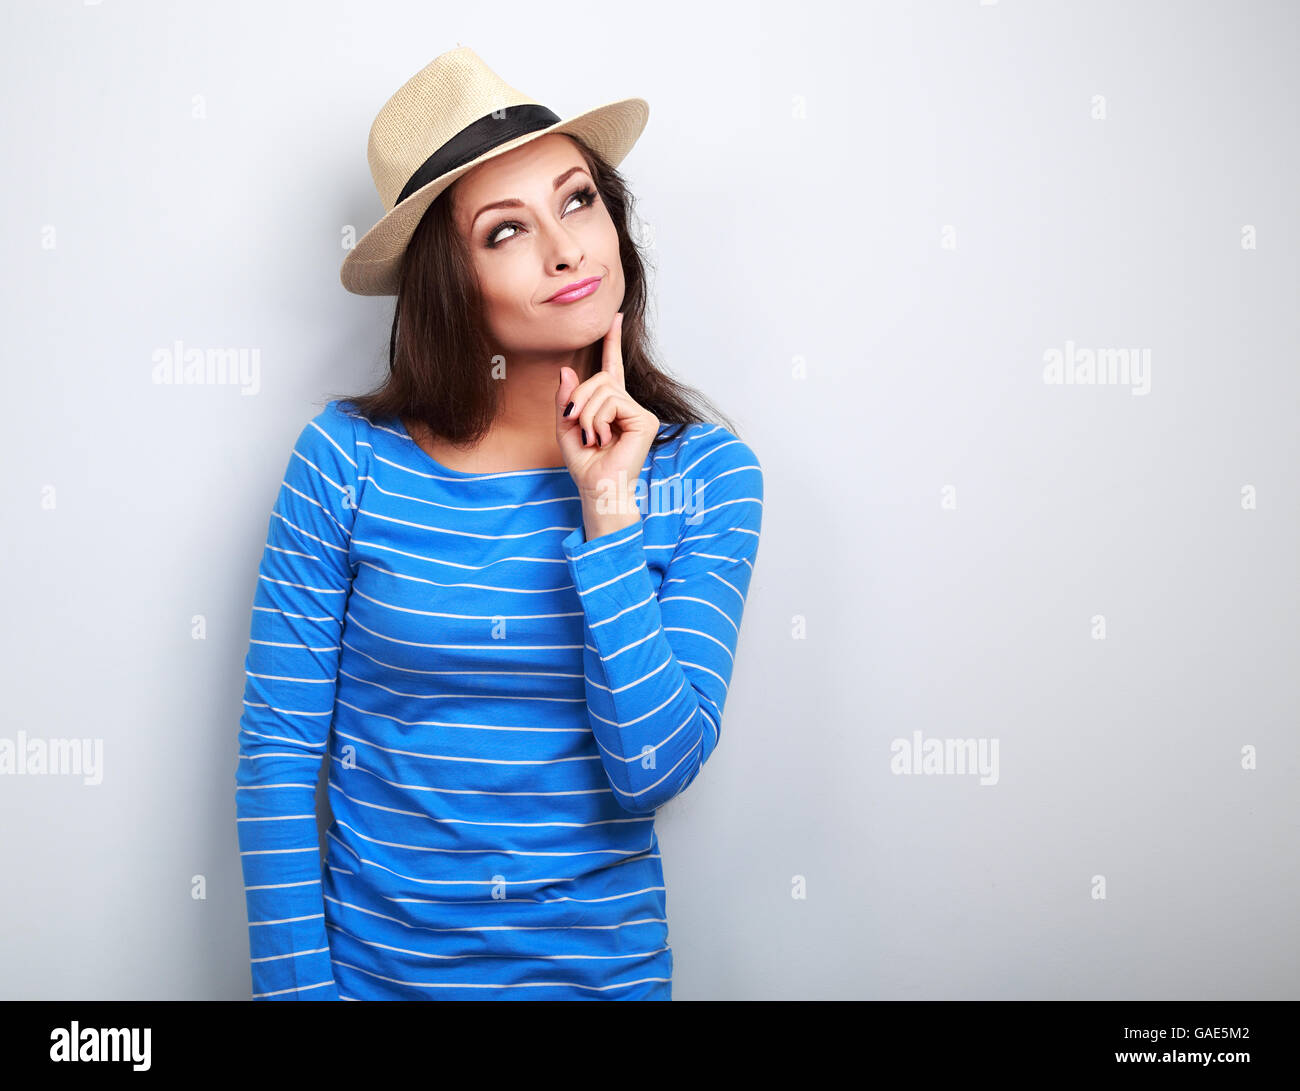 Grimacing young lady in summer hat thinking and looking up on blue background - Stock Image